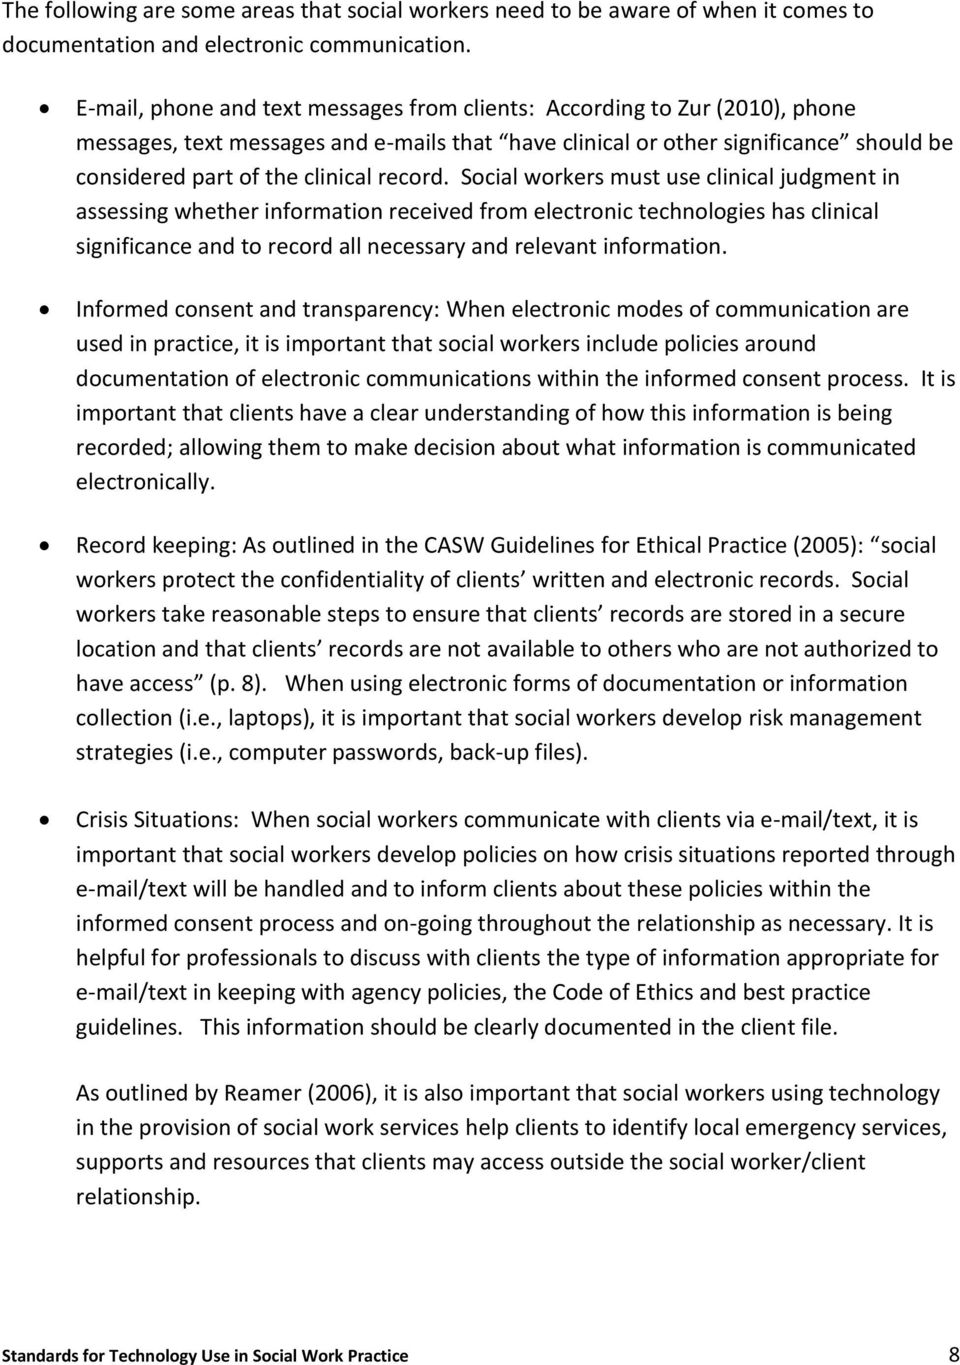 record. Social workers must use clinical judgment in assessing whether information received from electronic technologies has clinical significance and to record all necessary and relevant information.